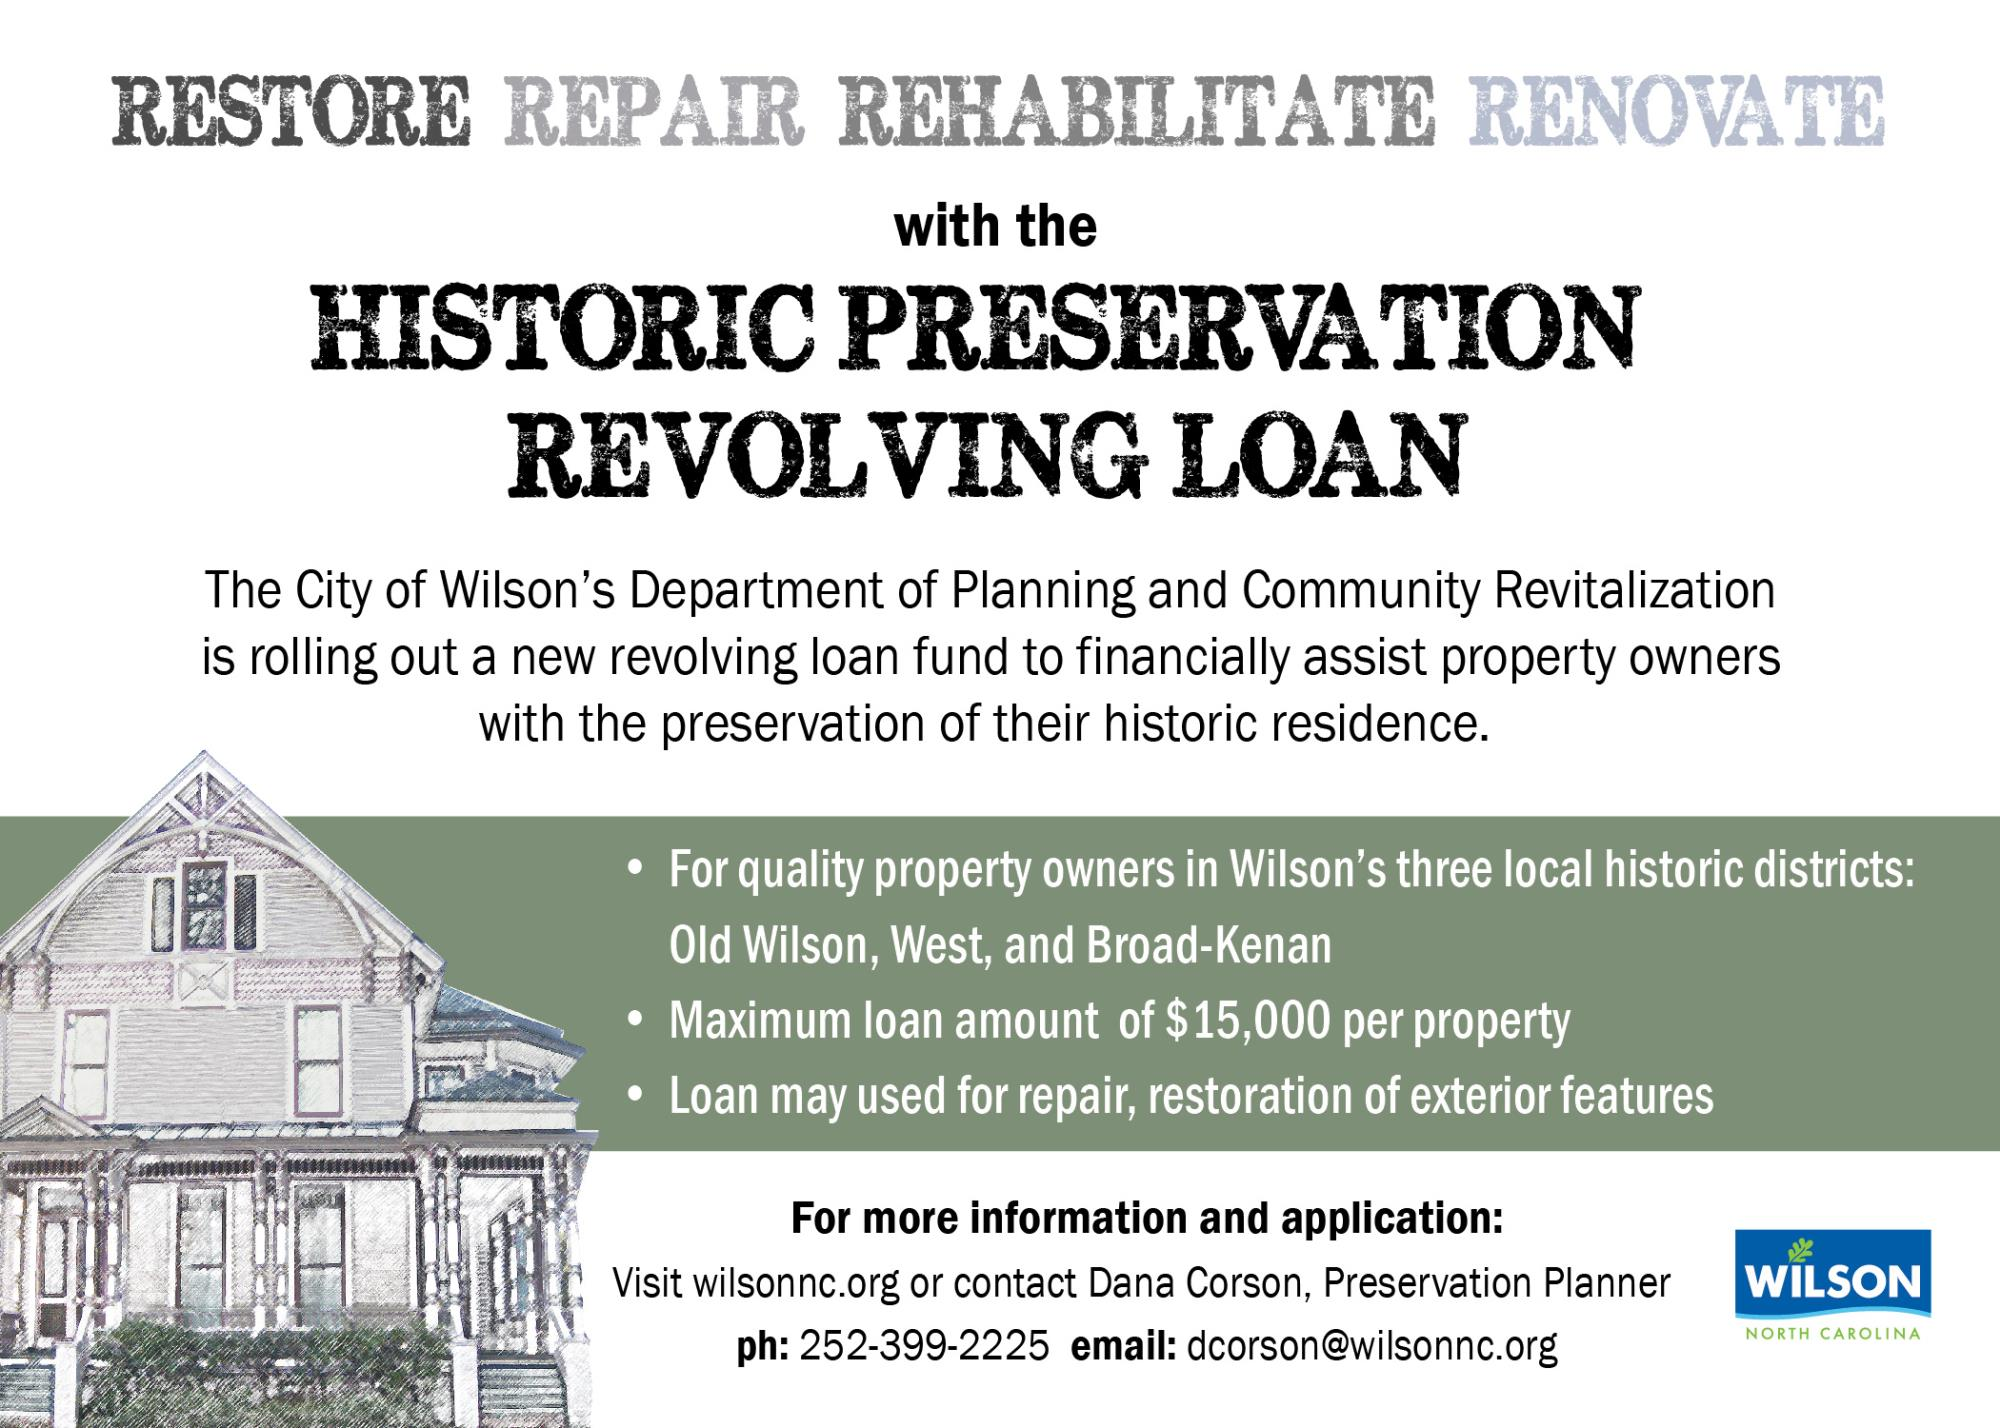 historic preservation loan information